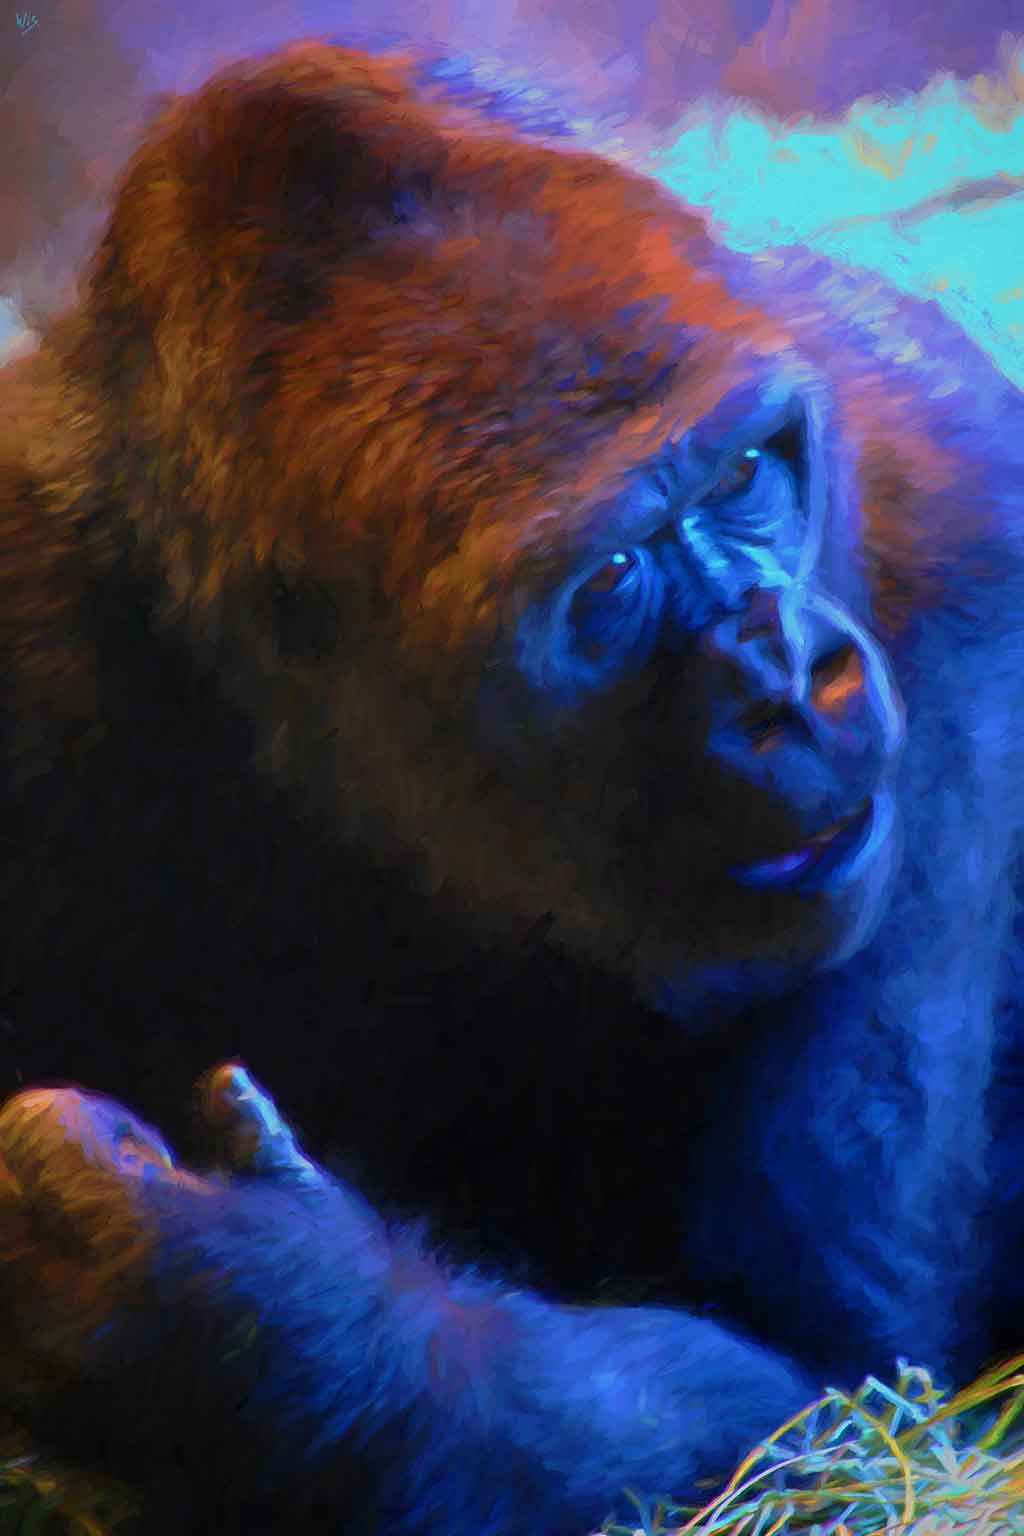 Gorilla Talking, digital portrait painting on Art Canvas Print by Wieslaw Sadurski